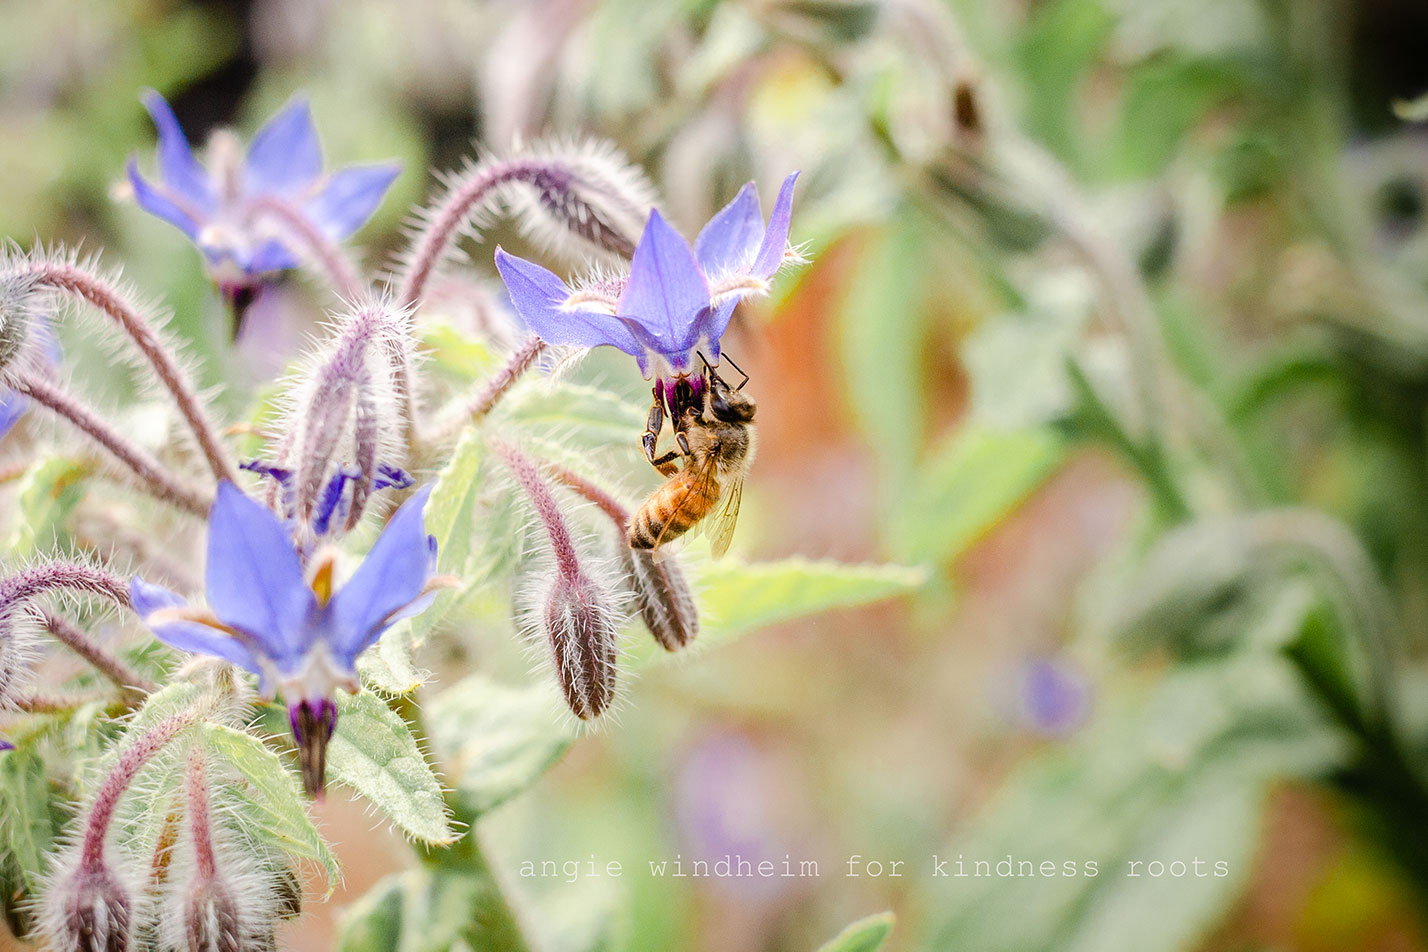 A honey bee drinks nectar from the blue flower or a borage plant.